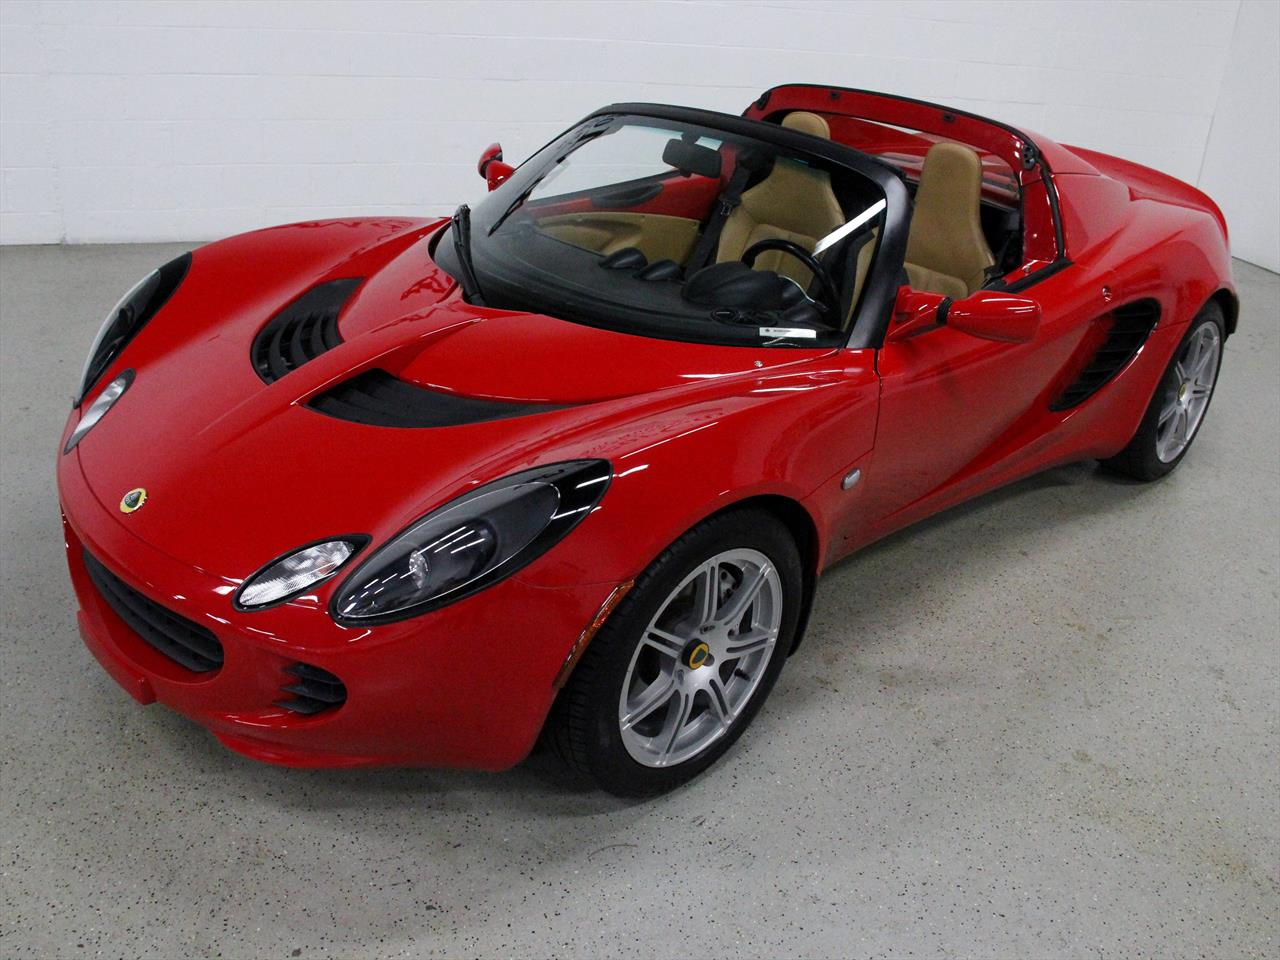 2005 lotus elise. Black Bedroom Furniture Sets. Home Design Ideas